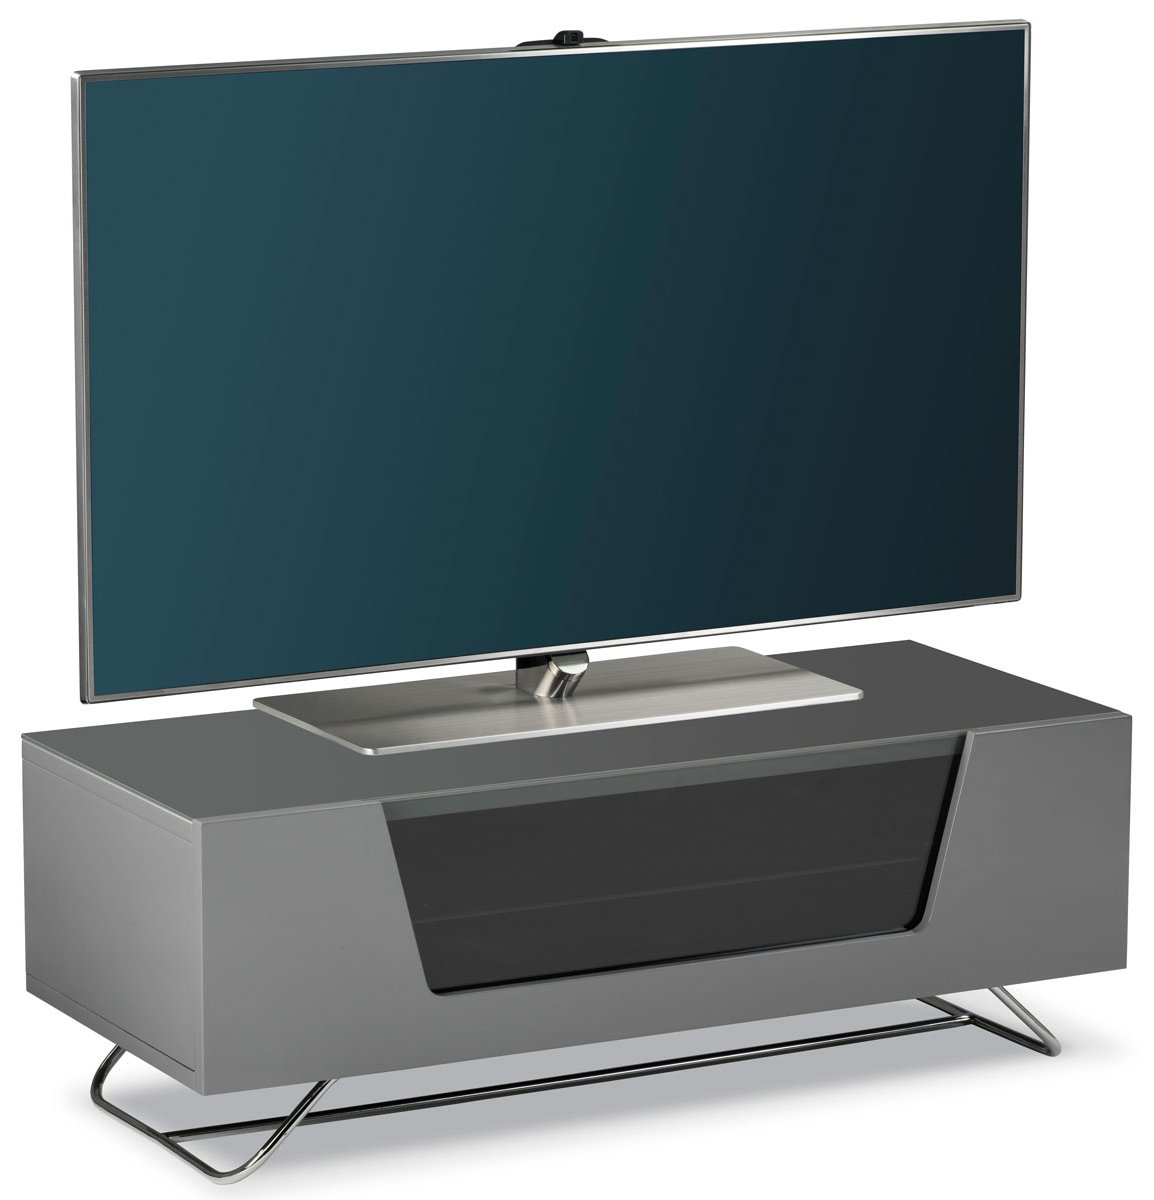 Alphason Chromium Grey Tv Stand For Up To 50 Tvs